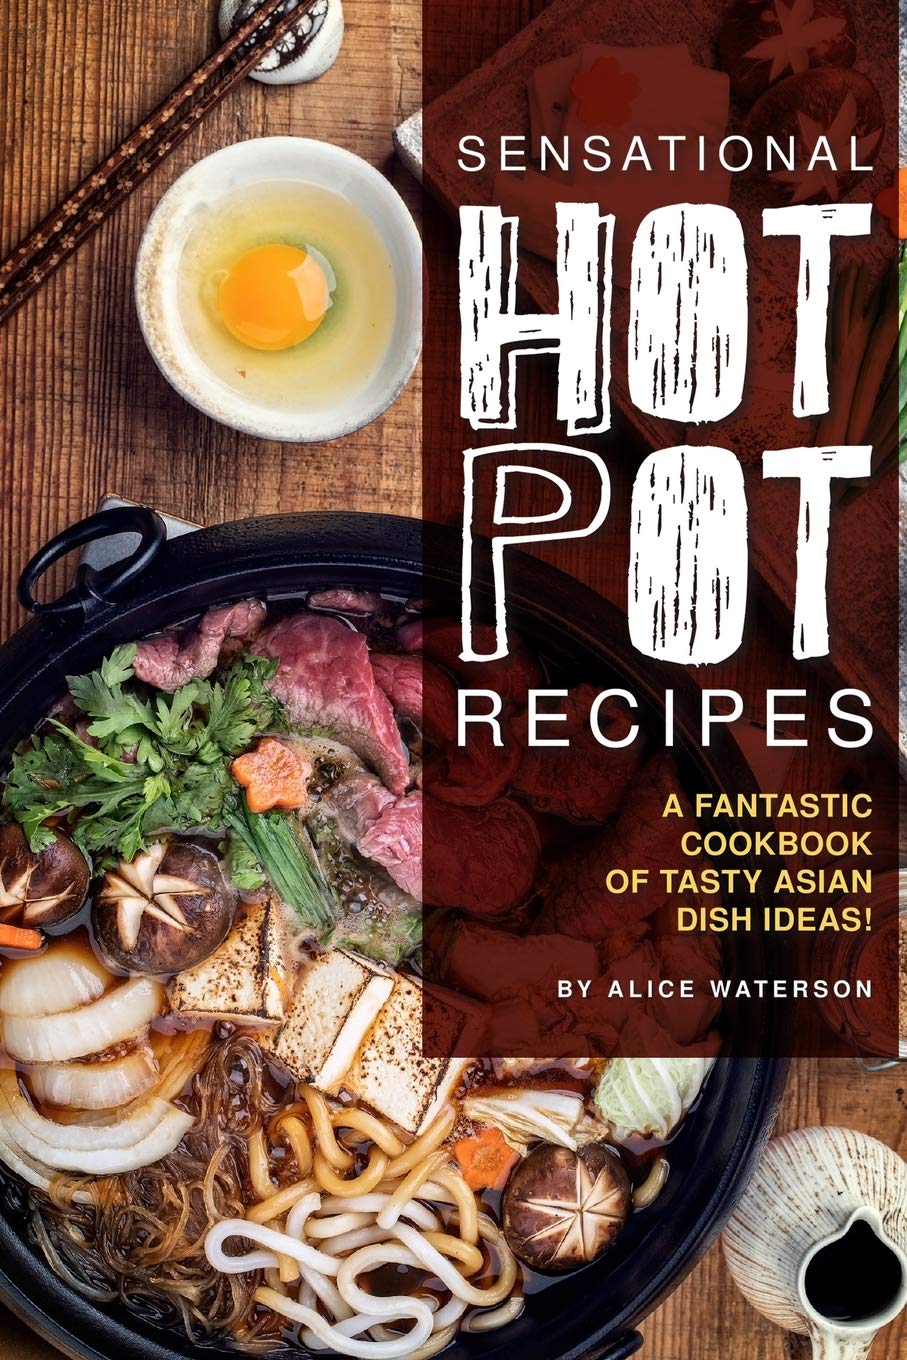 Sensational Hot Pot Recipes  A Fantastic Cookbook Of Tasty Asian Dish Ideas